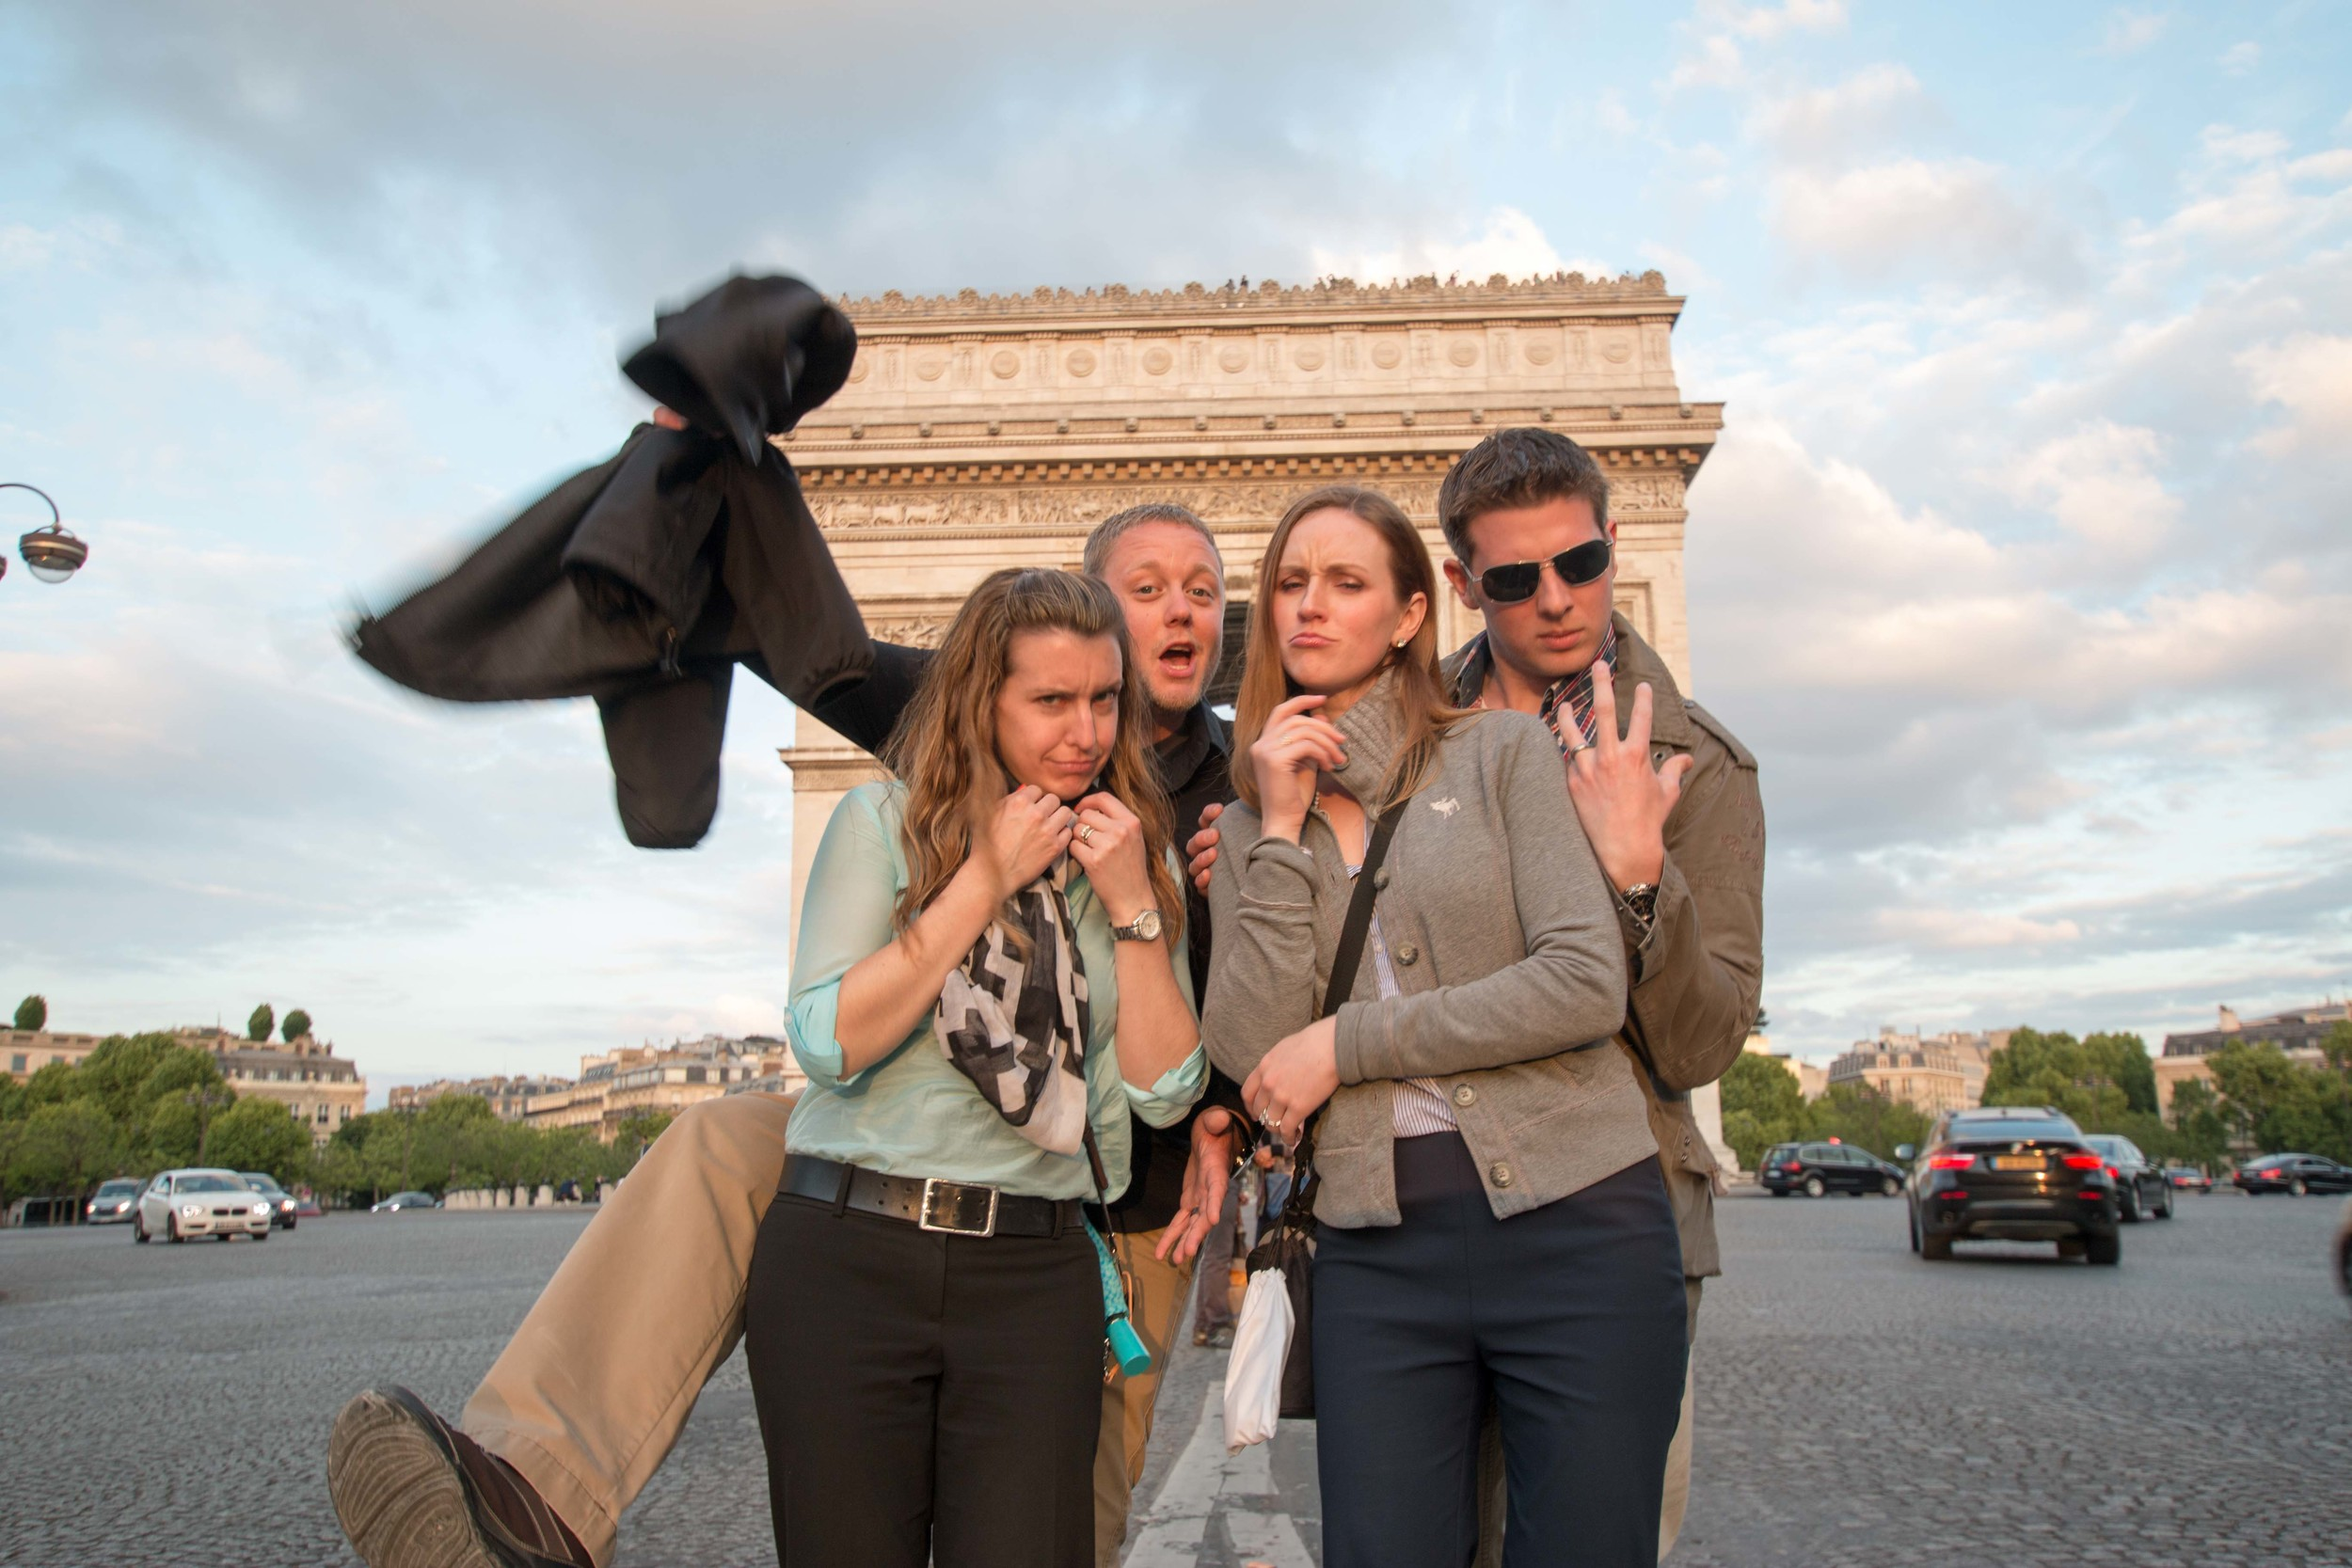 Sarah, Scott, Justine, And Andrew in Front of the Arc